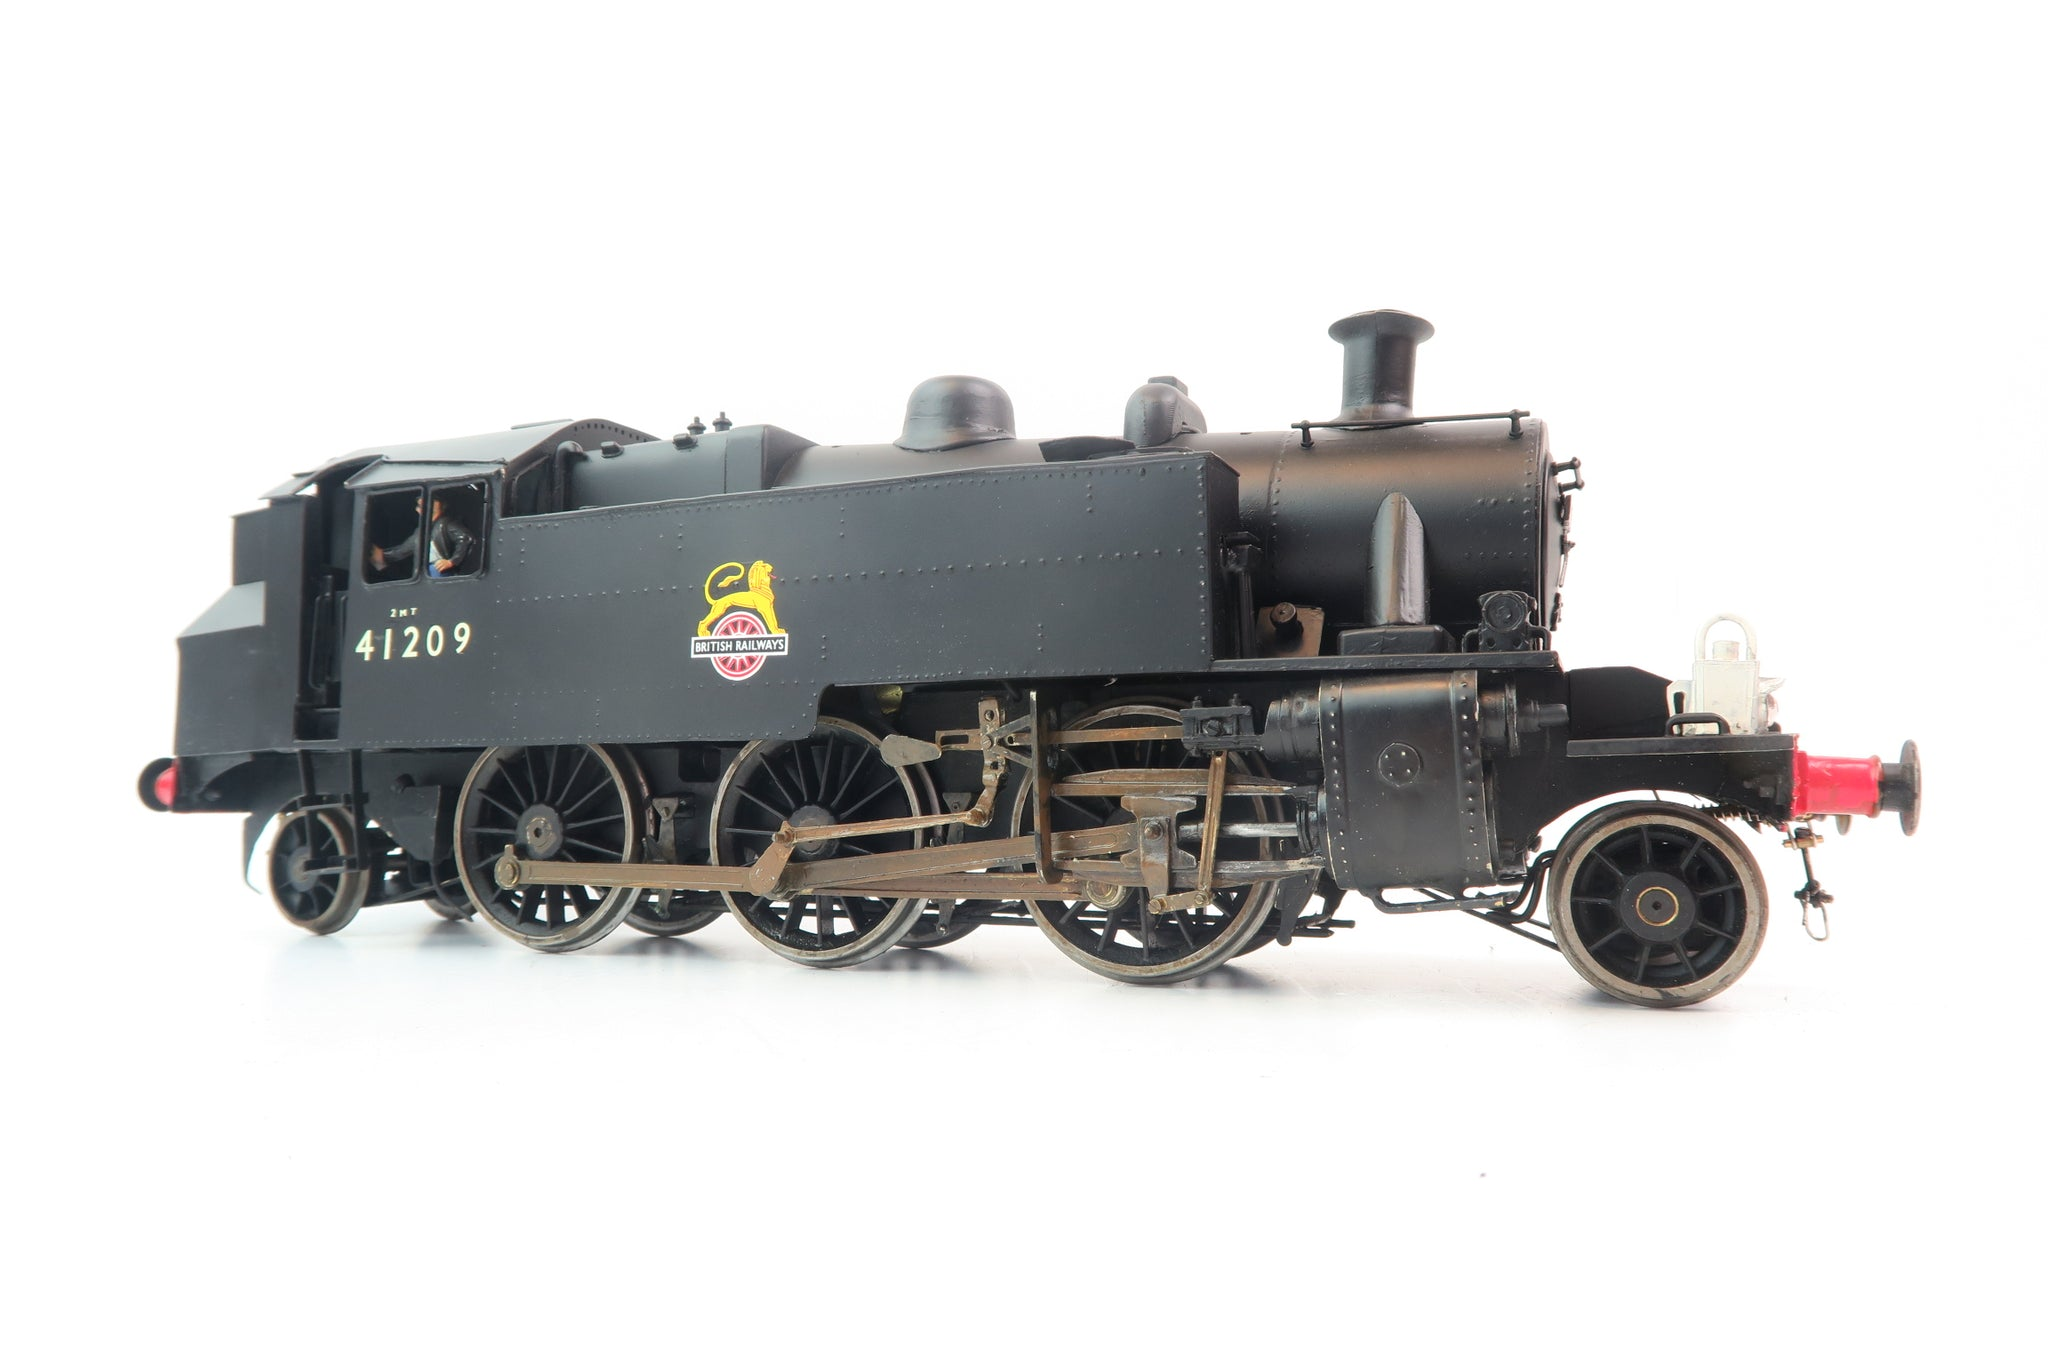 Gauge 1 Kit/Scratch built BR Black Class 2MT 2-6-2T '41209'